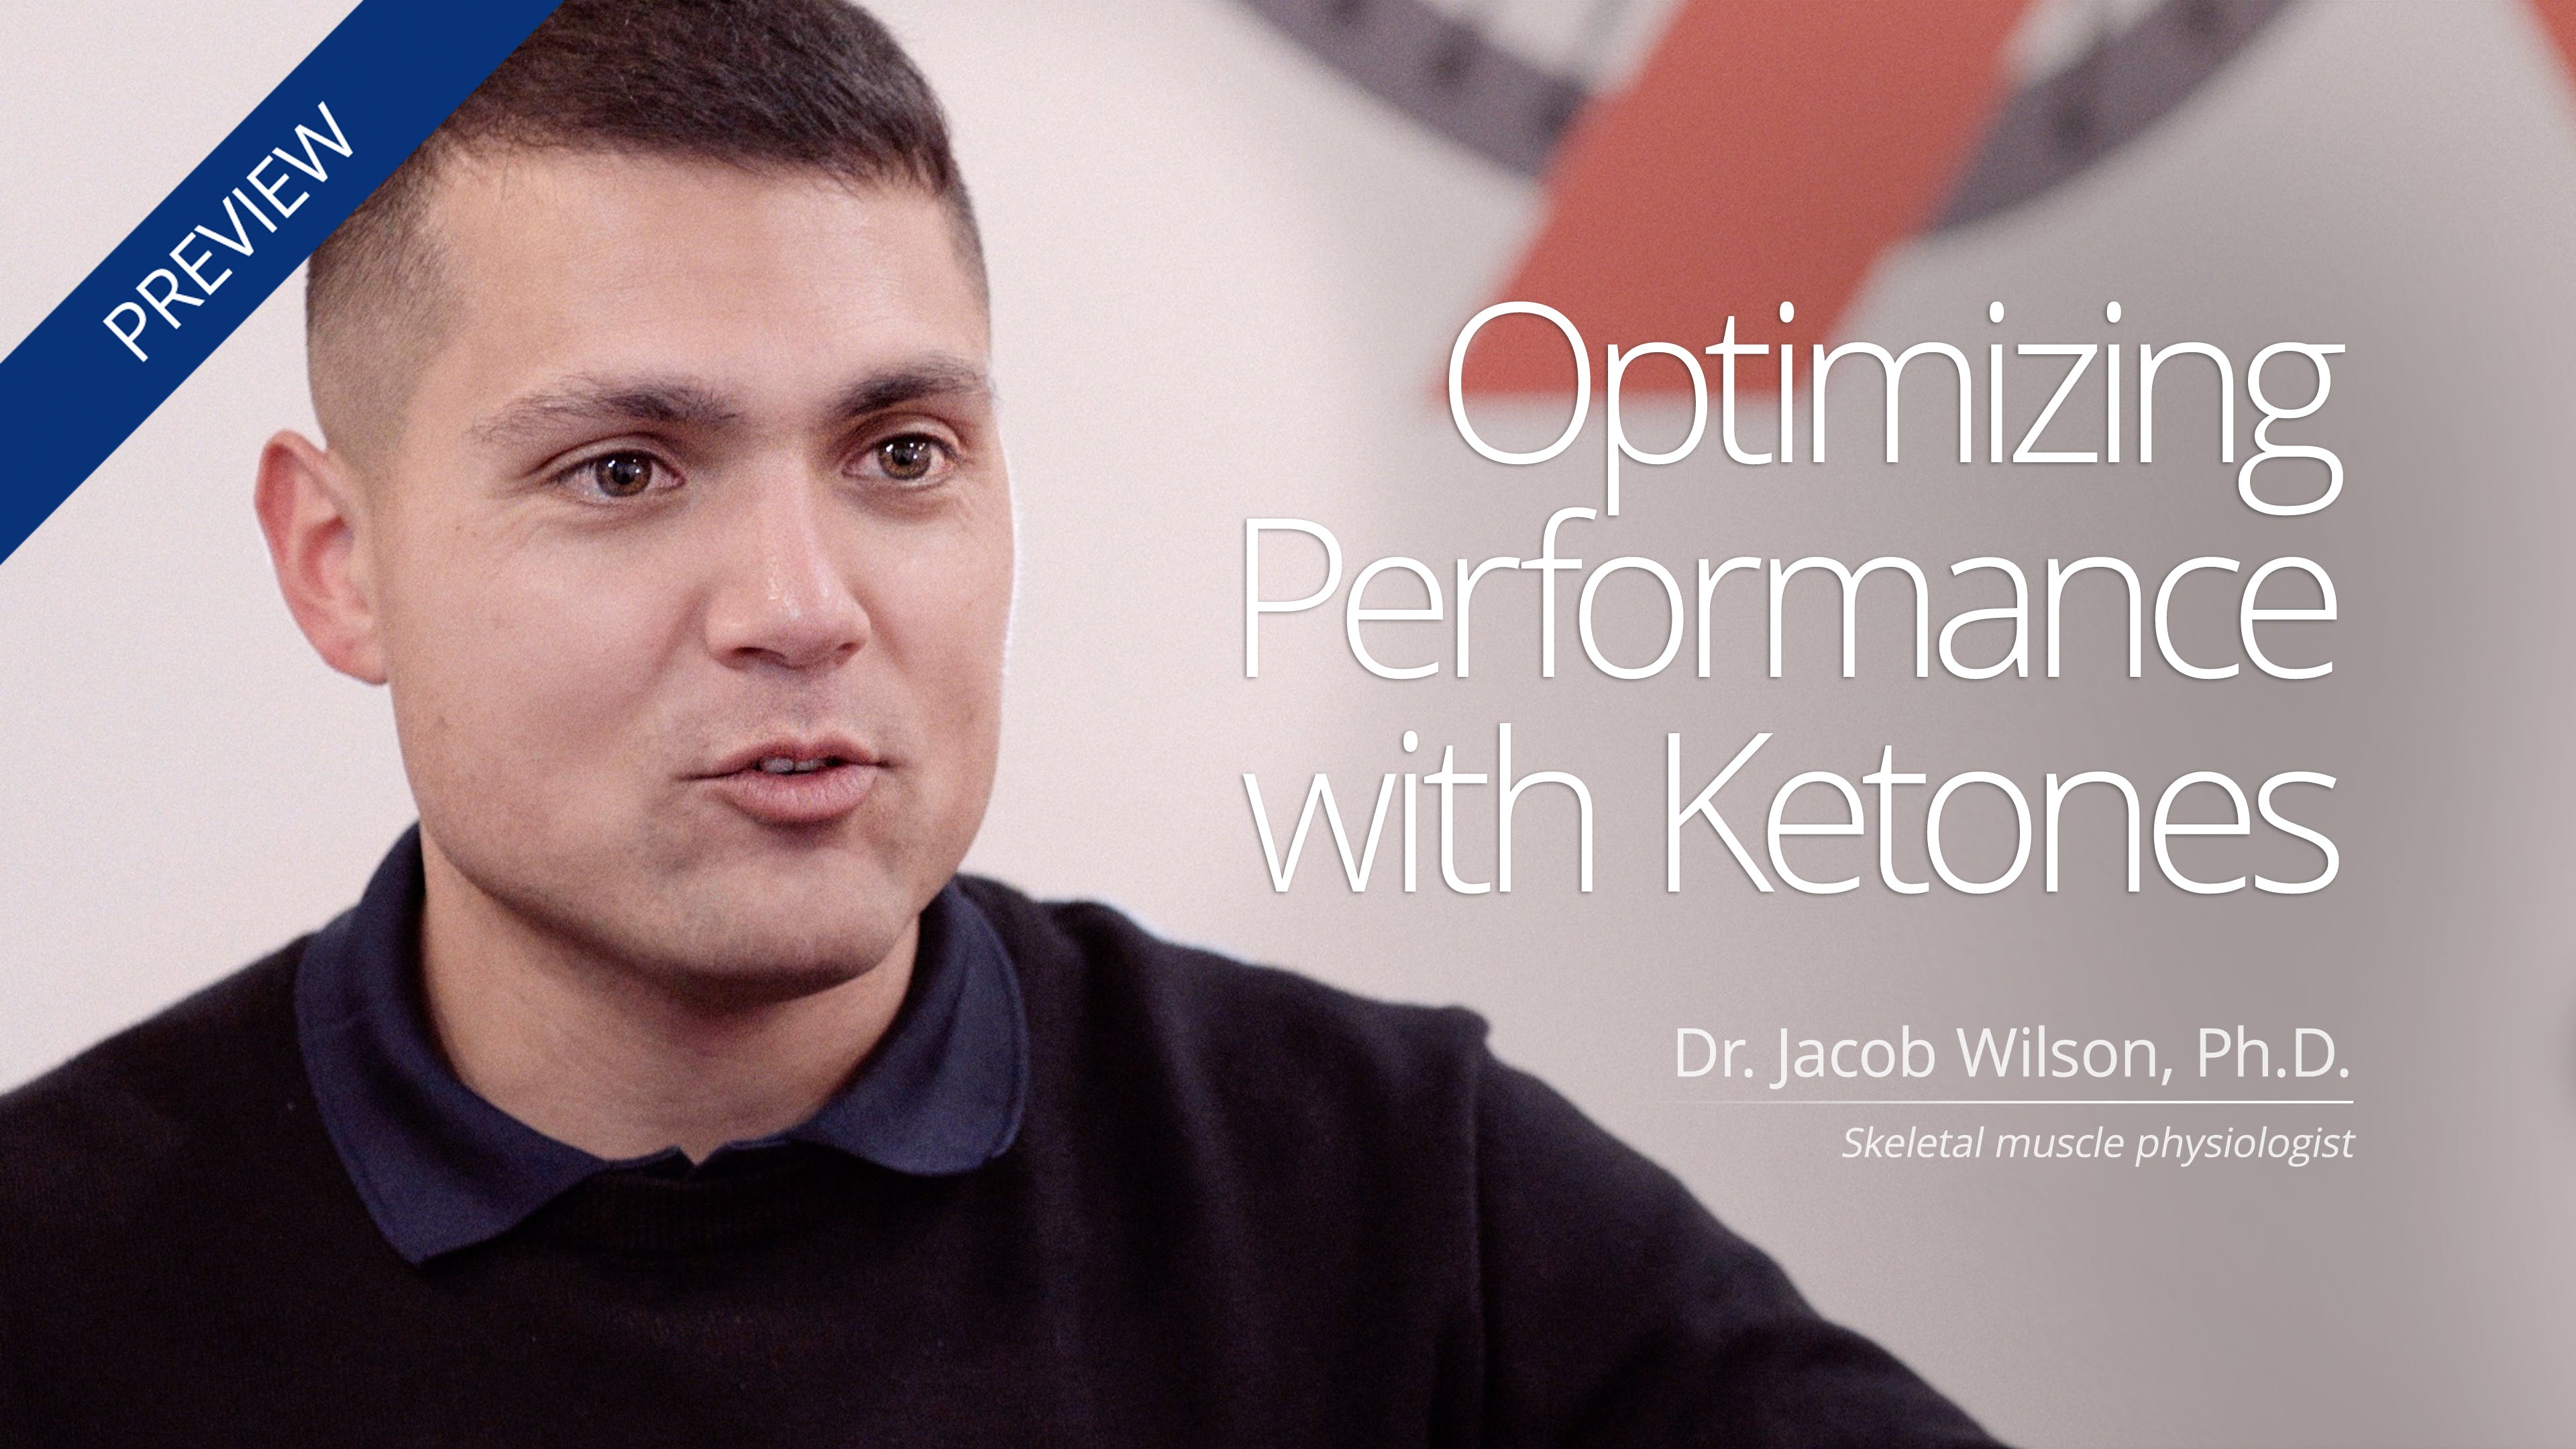 Can taking supplements let people experience the cognitive boost of keto?